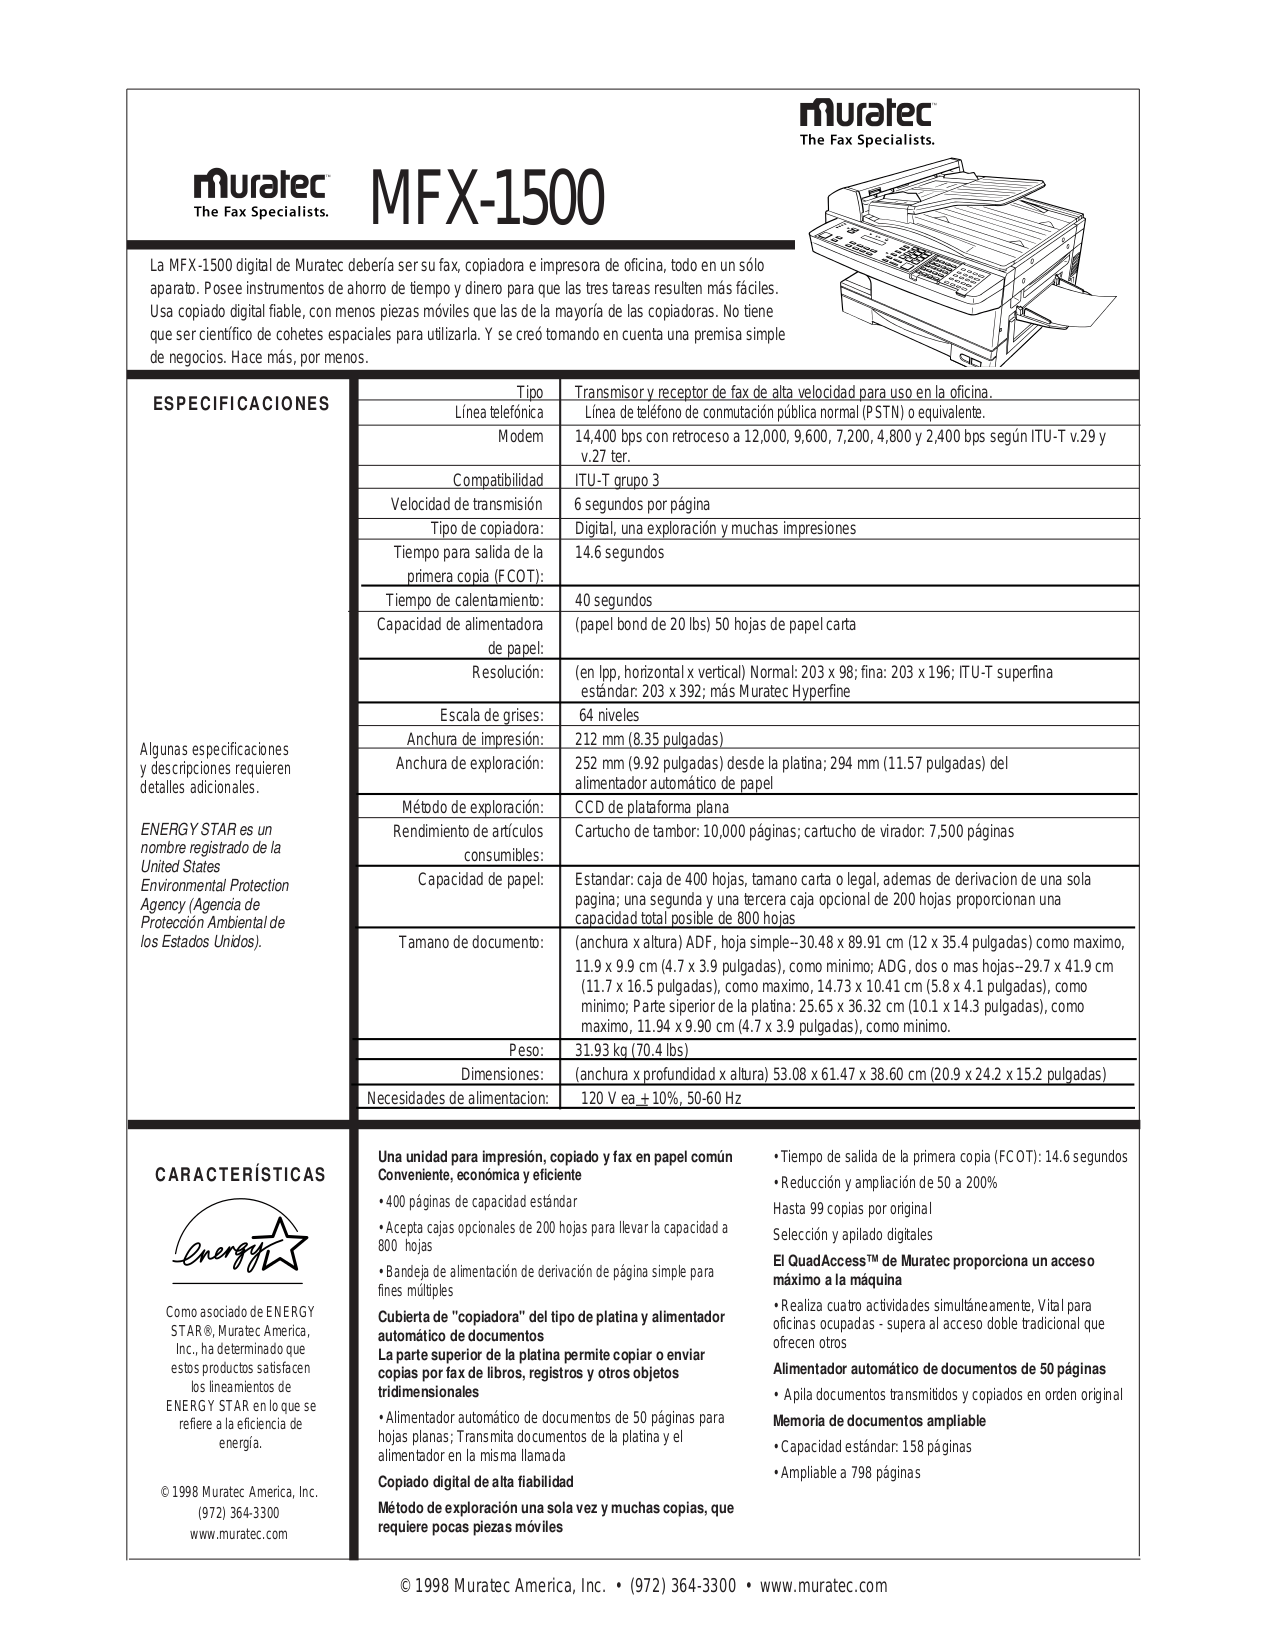 Download free pdf for Muratec MFX-1500 Copier manual